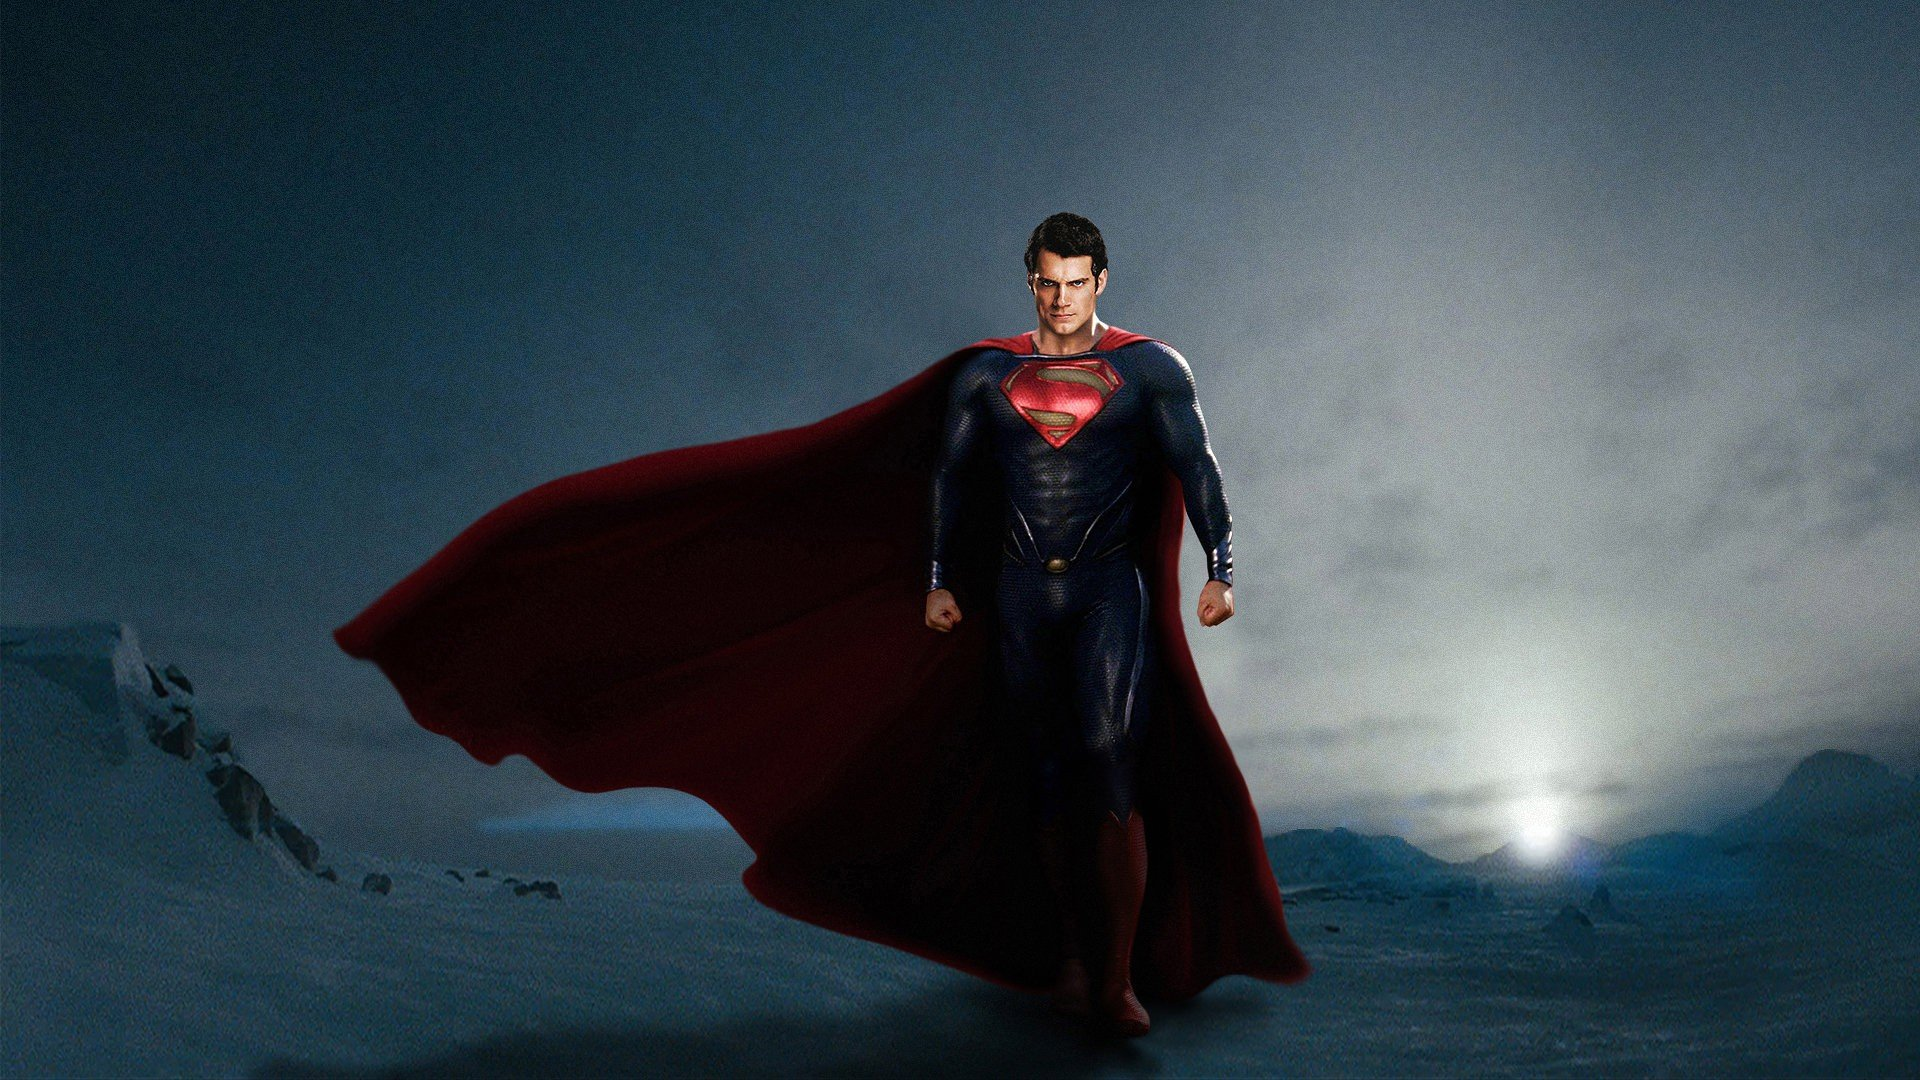 http://lounge.obviousmag.org/sociocratico/2013/07/17/imagens/Superman.jpg